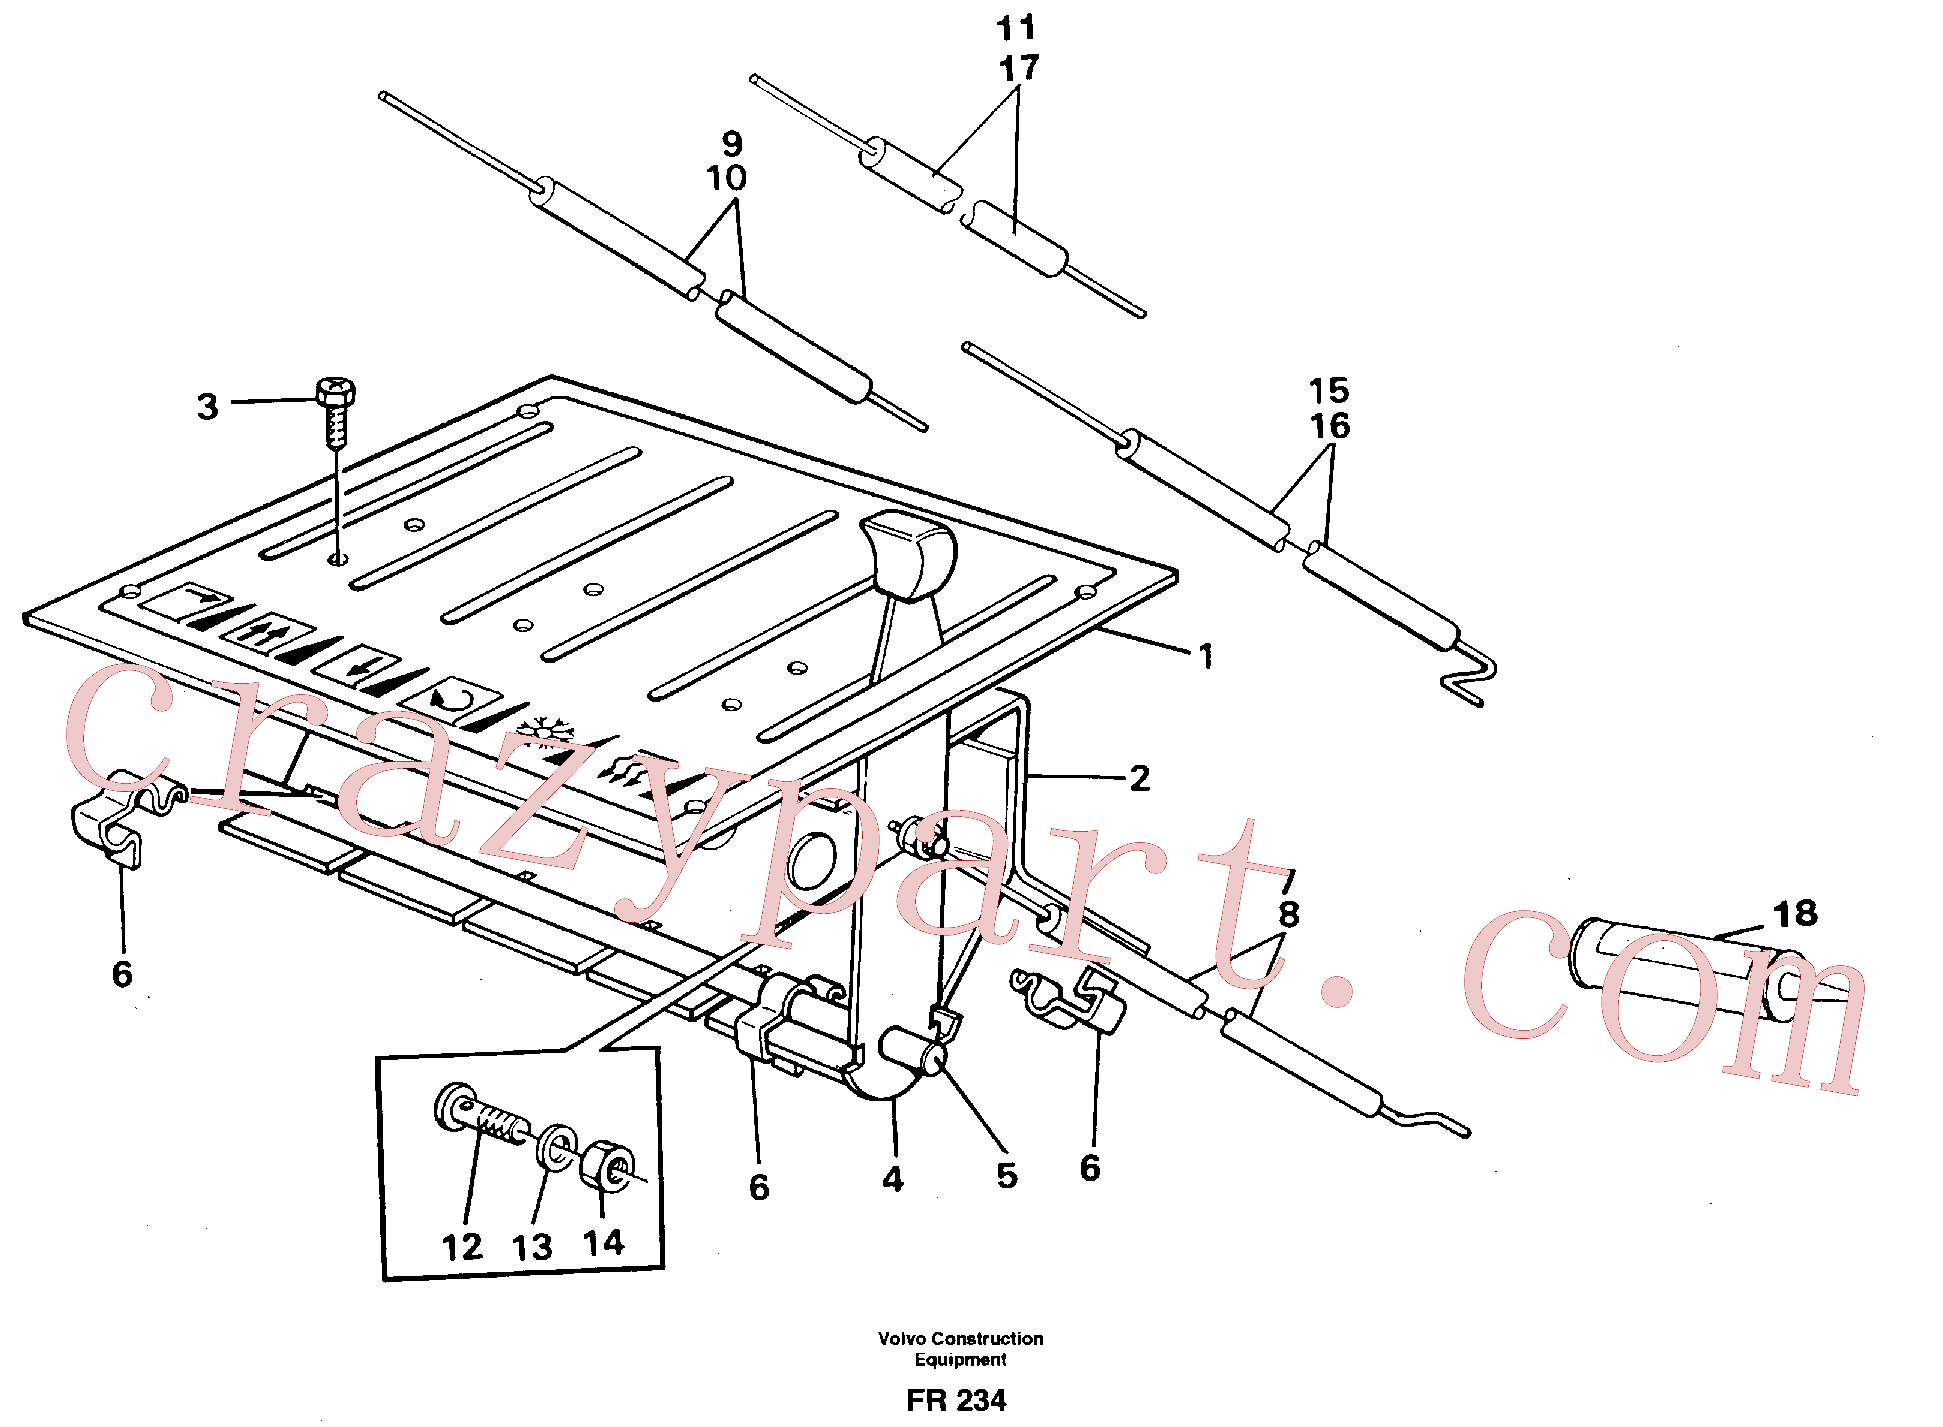 VOE14246694 for Volvo Heater control(FR234 assembly)